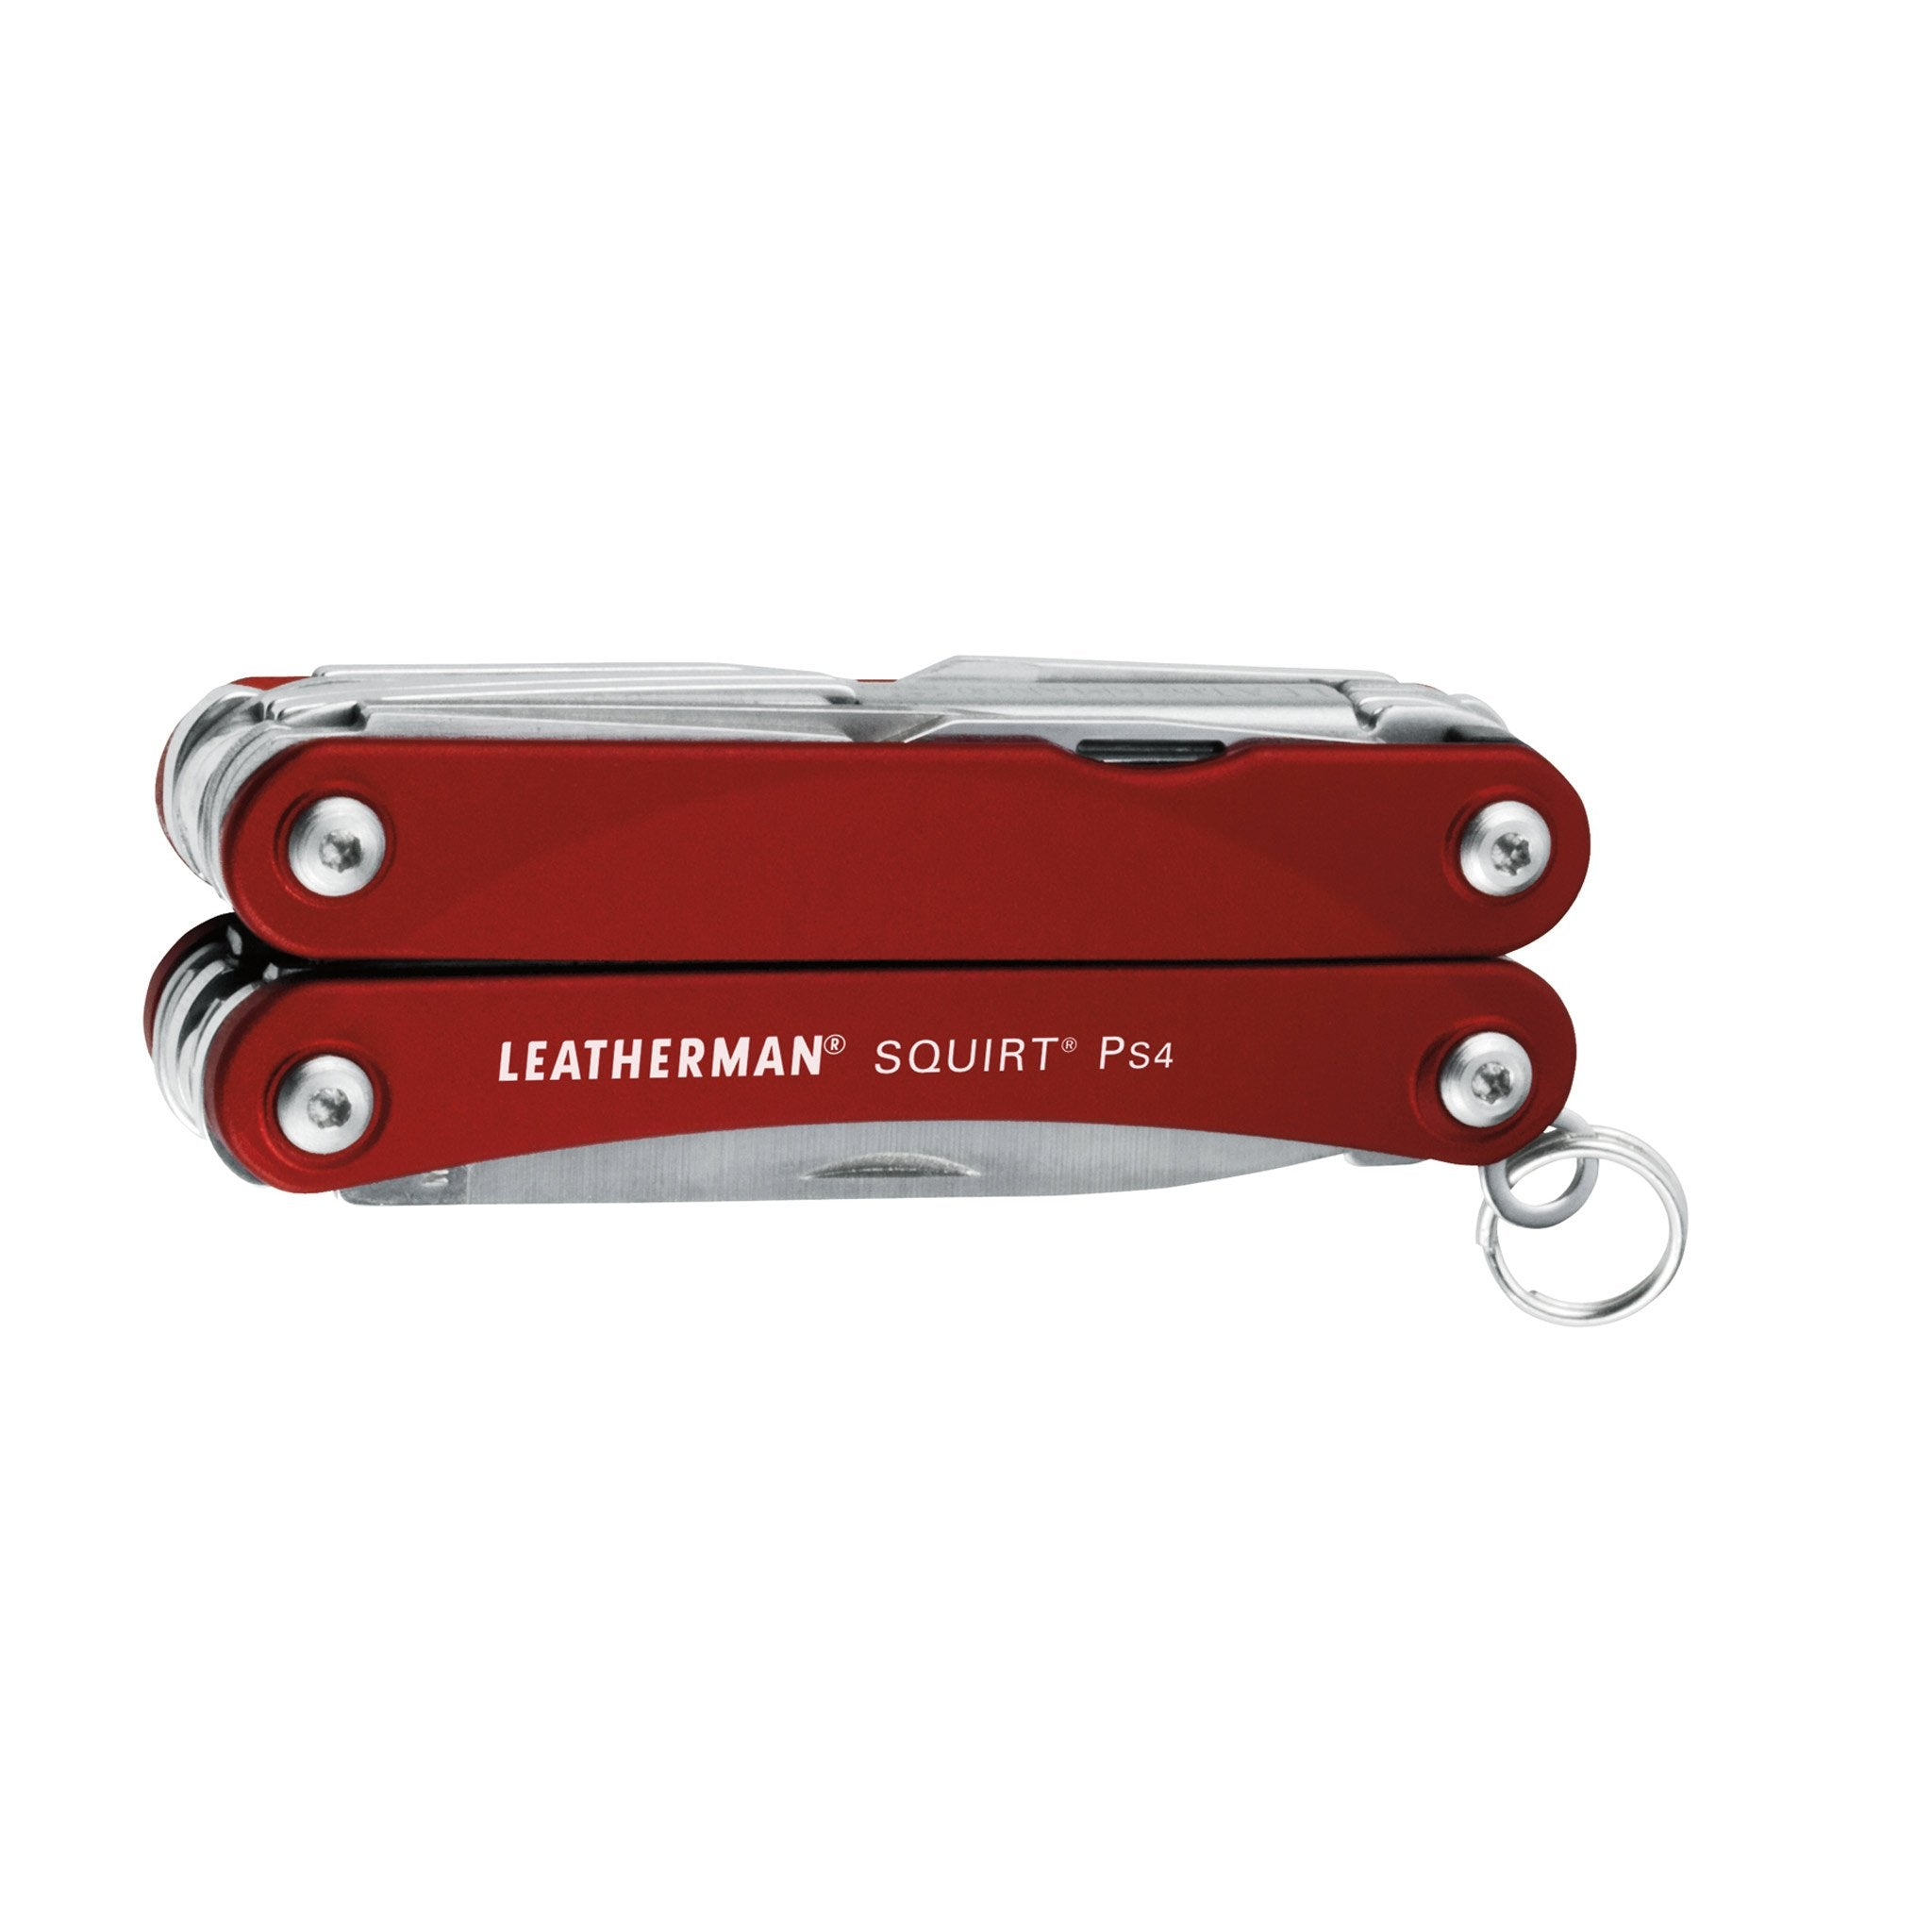 Leatherman Squirt PS4 - Arthur Beale